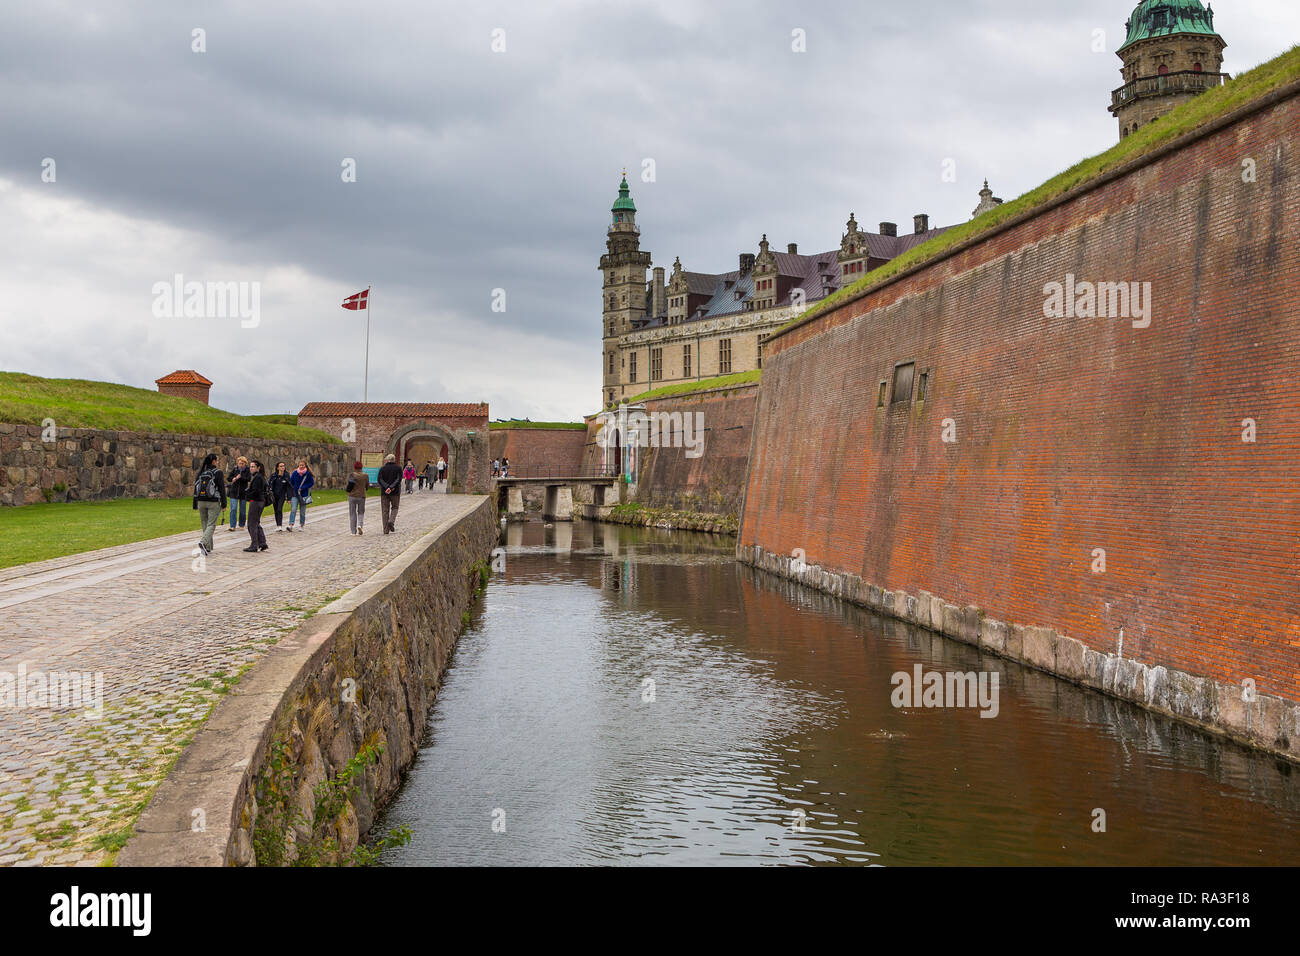 Helsingor, Denmark- 30 August 2014: View of Kronborg palace, defensive walls and fosse. Kronborg Palace, most important Renaissance palace in Northern - Stock Image